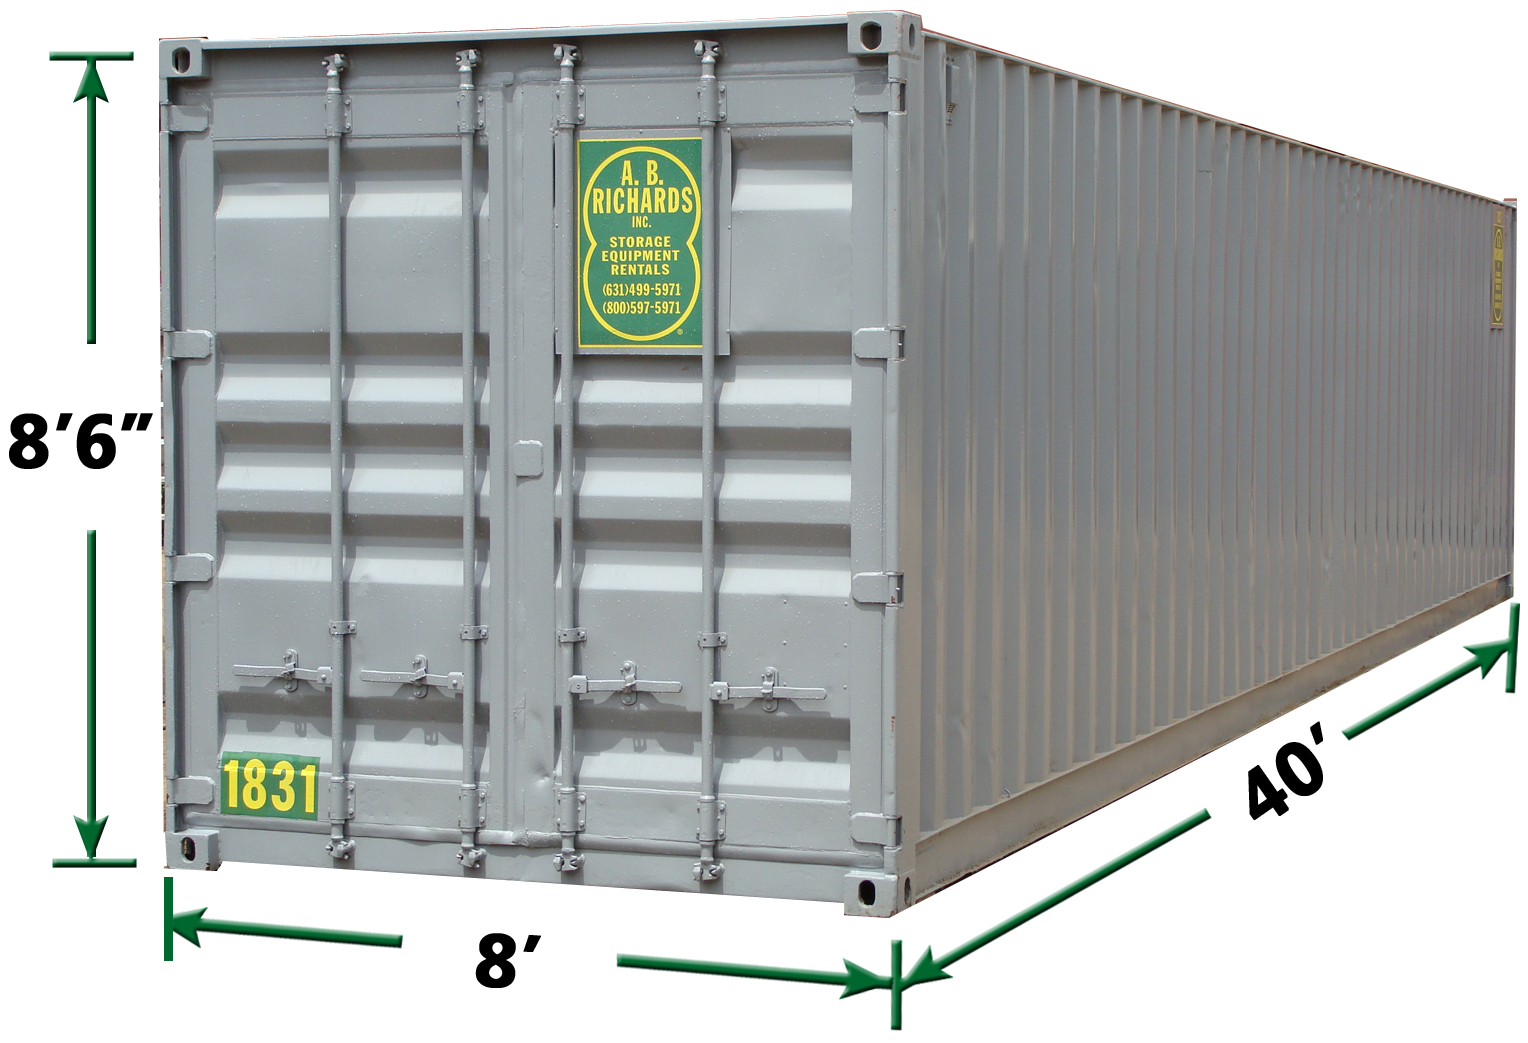 40 Storage Container Rentals AB Richards